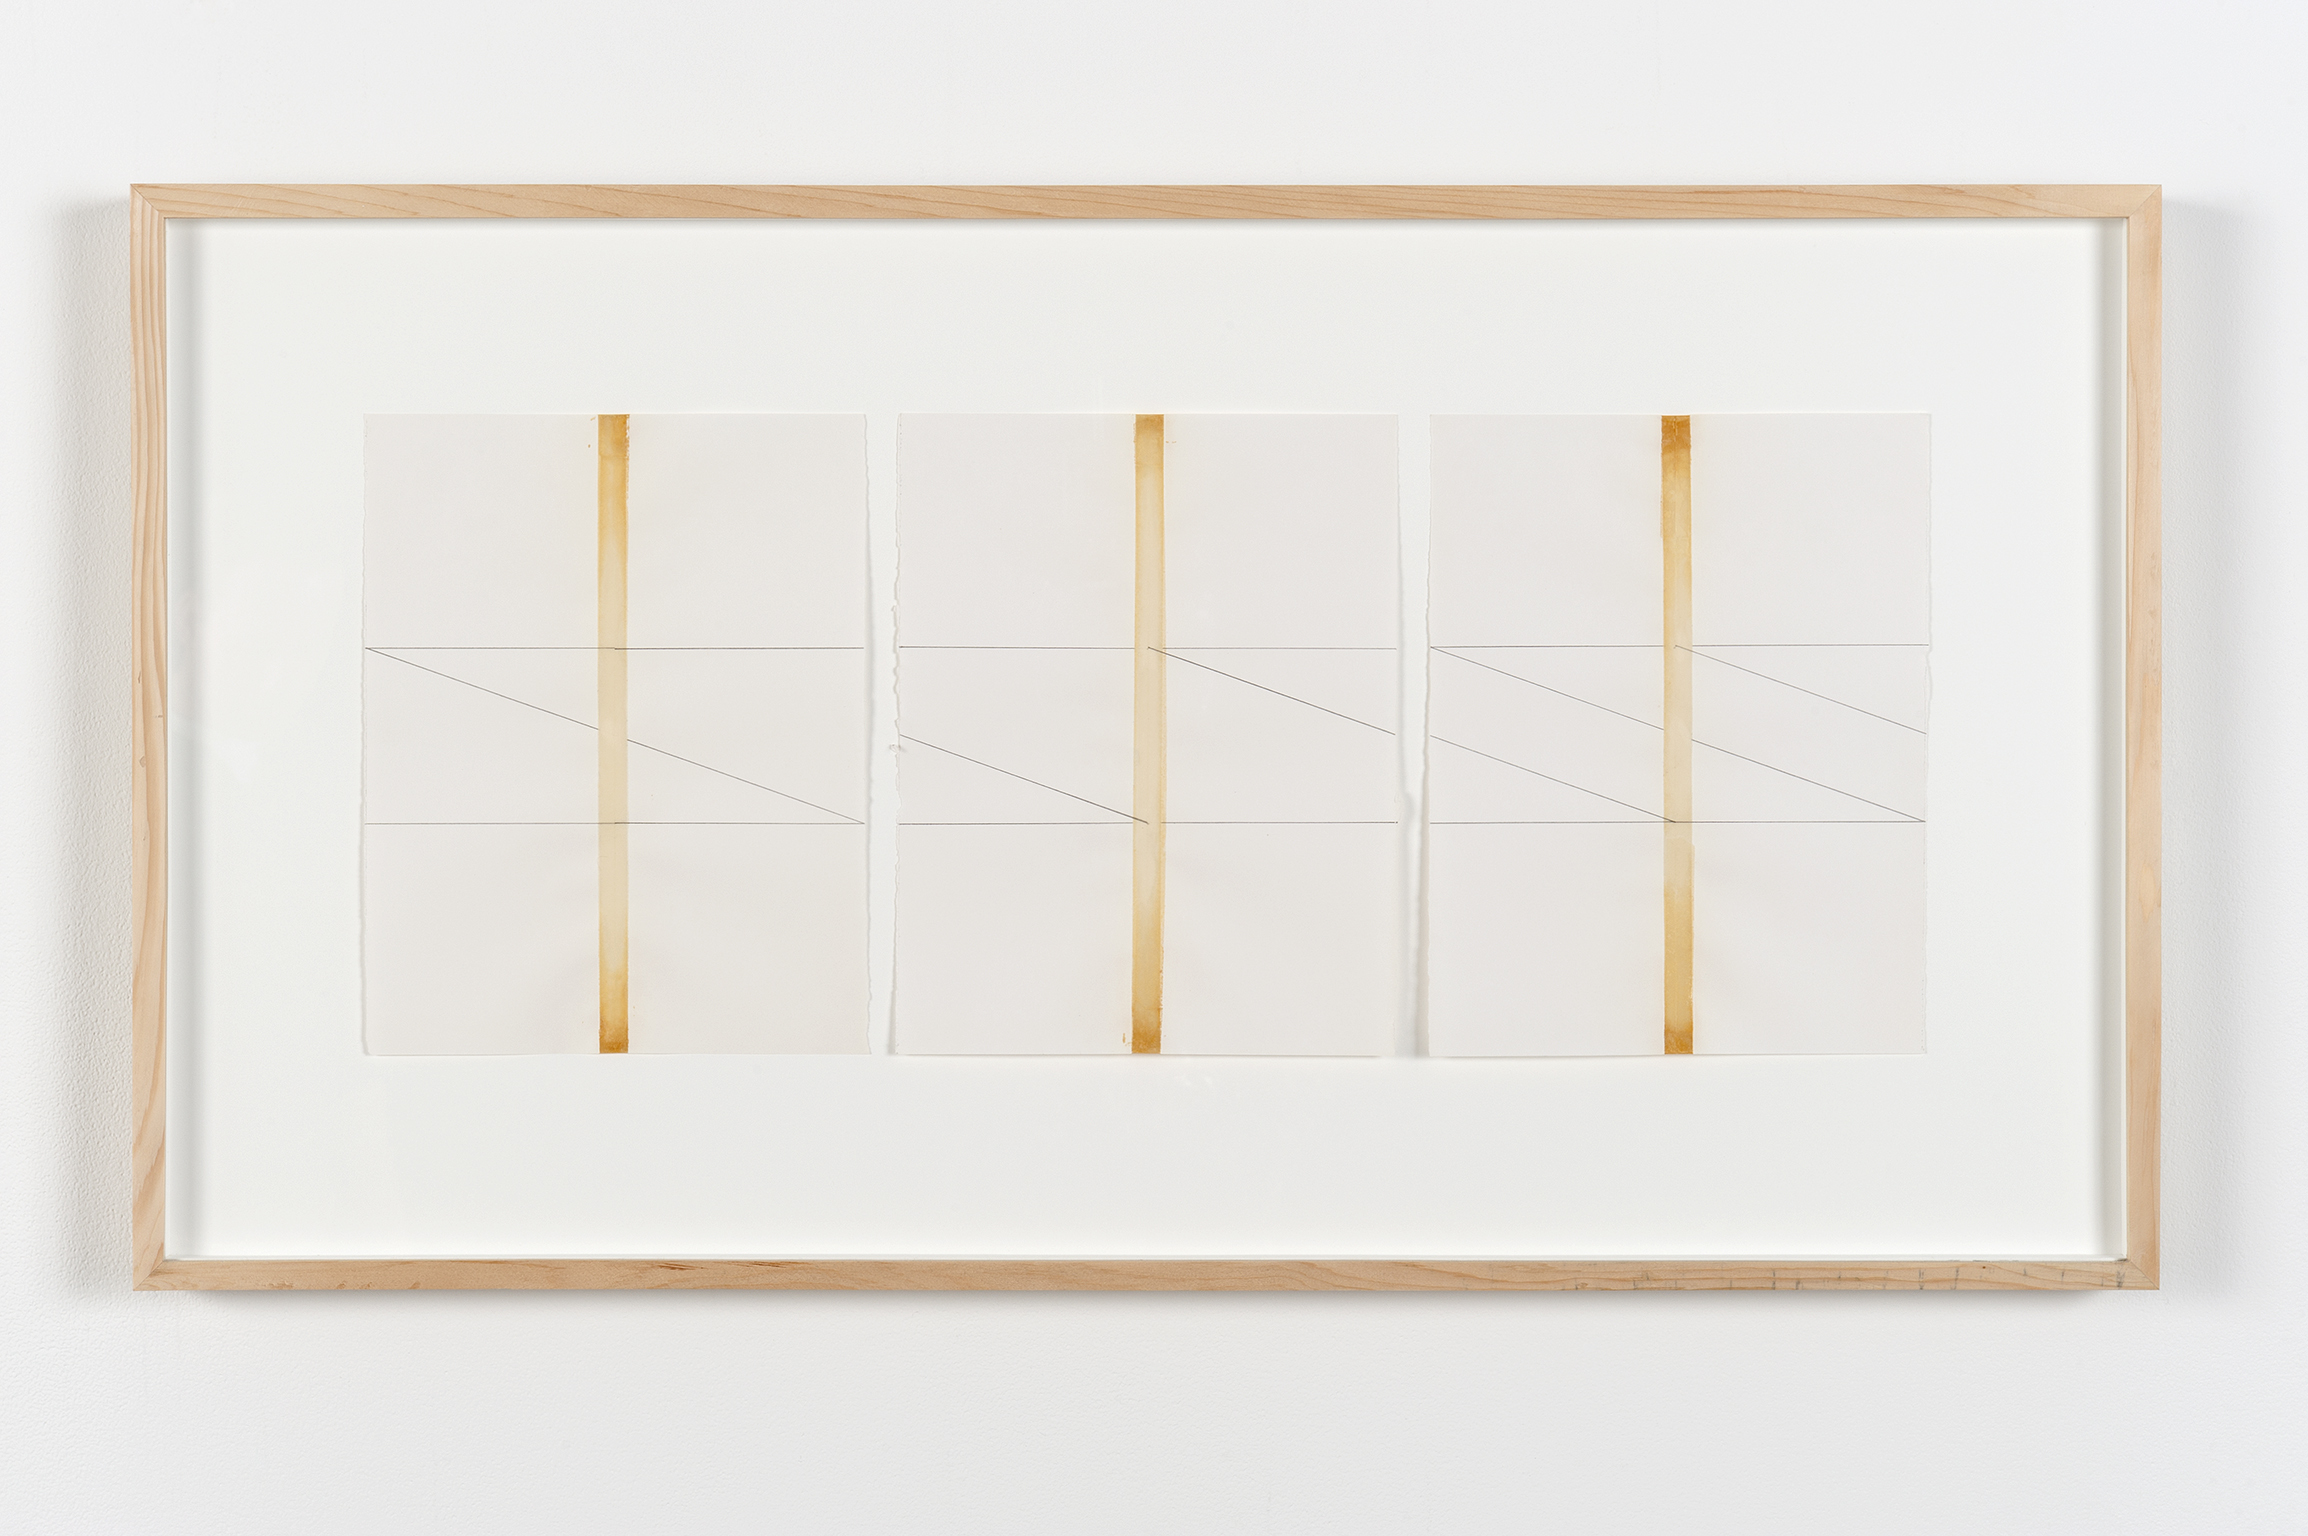 ​Robert Kleyn, Taped Drawings, 1970, transparent tape and pencil on paper, 19 x 35 in. (48 x 88 cm) by